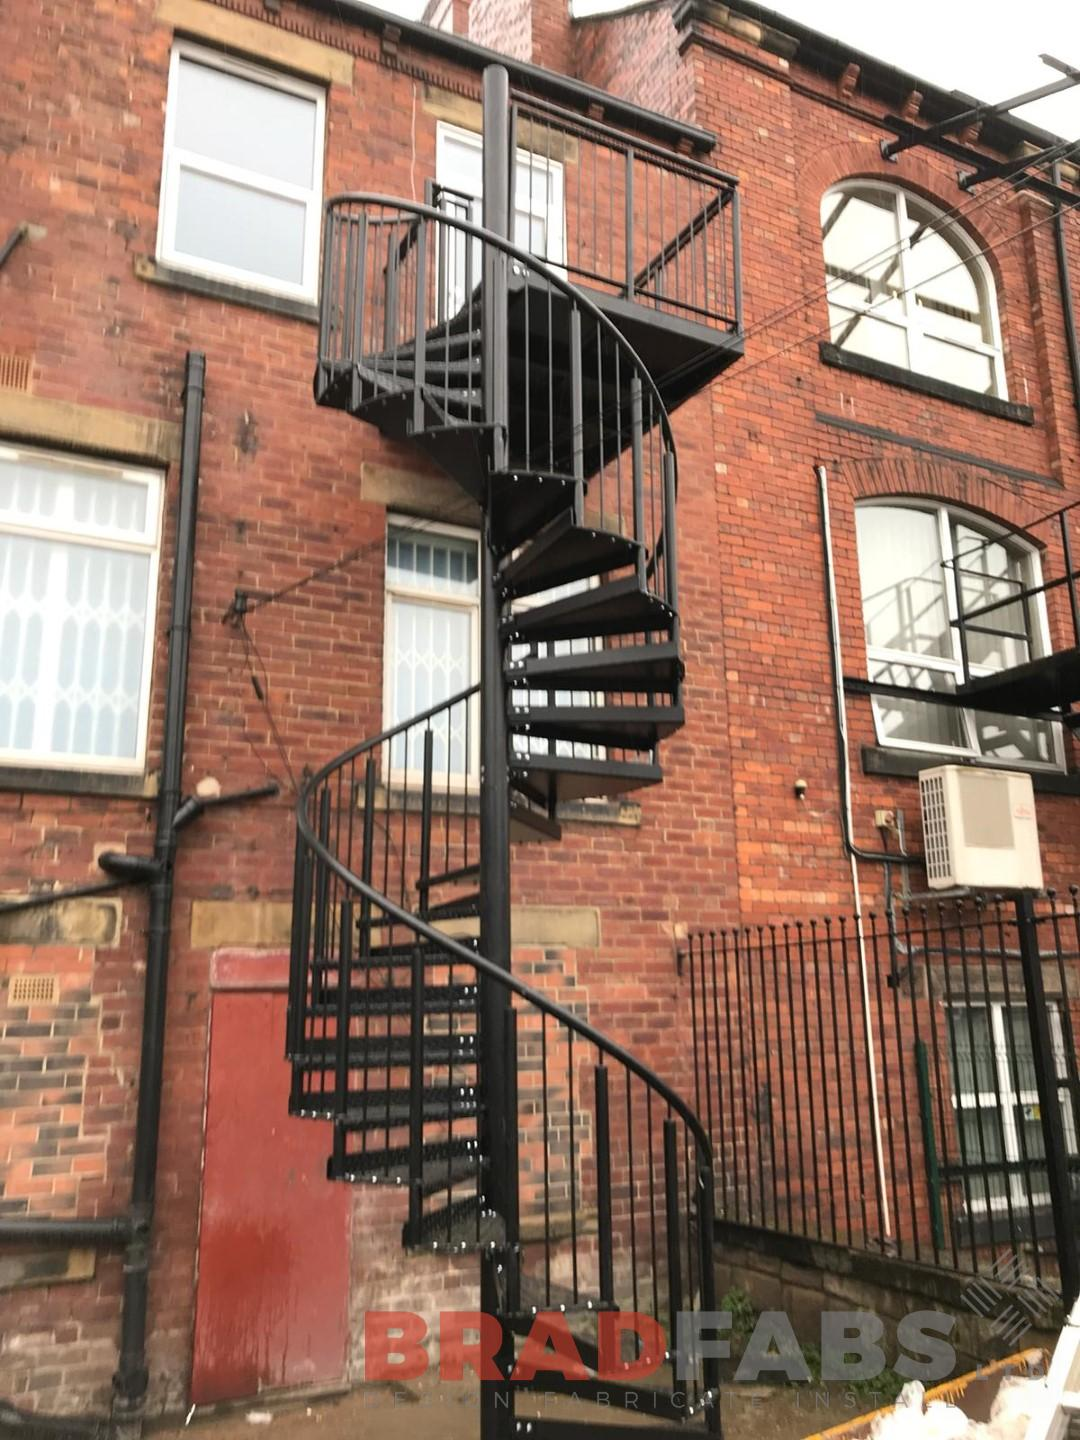 Powder coated black Fire Escape Spiral Staircase installed by Bradfabs